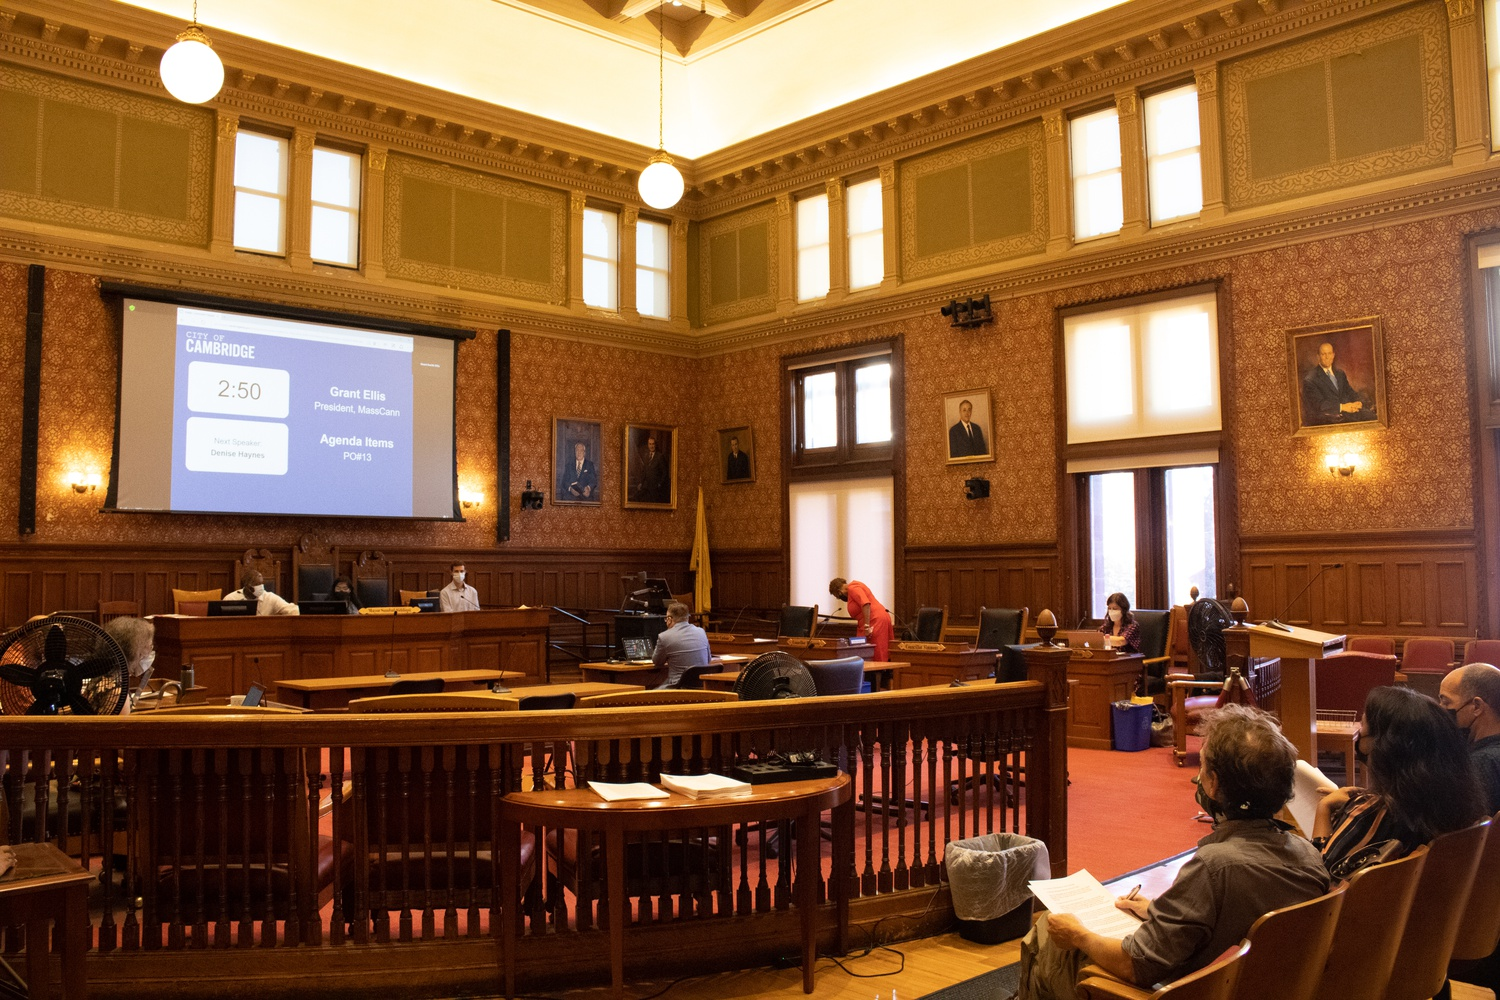 The Cambridge City Council meets for its weekly Monday evening meeting on September 13.